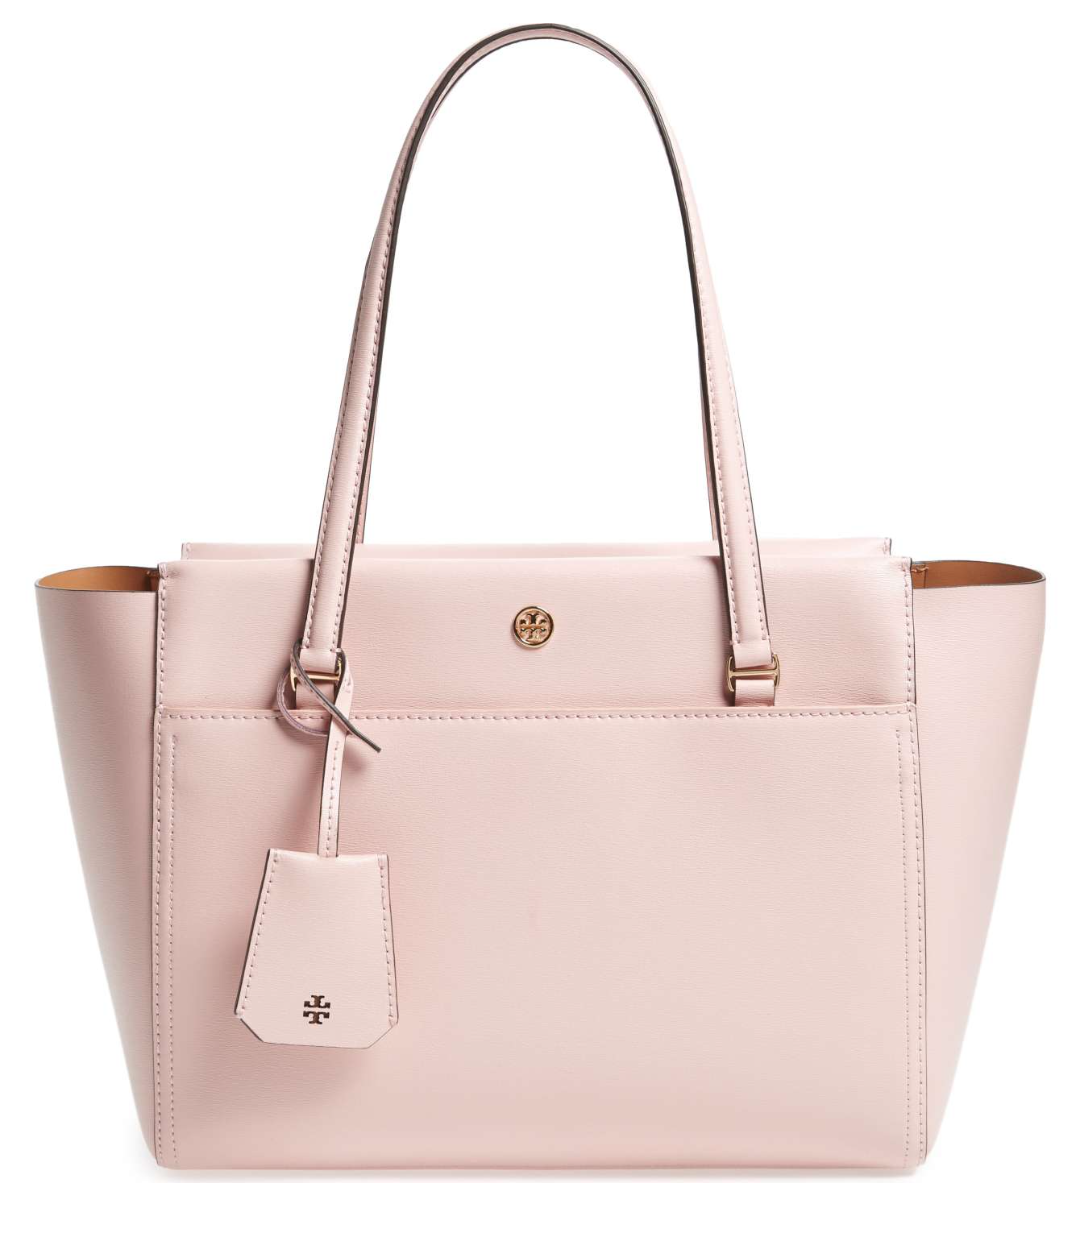 Breast Cancer Awareness Tote by Tori Burch